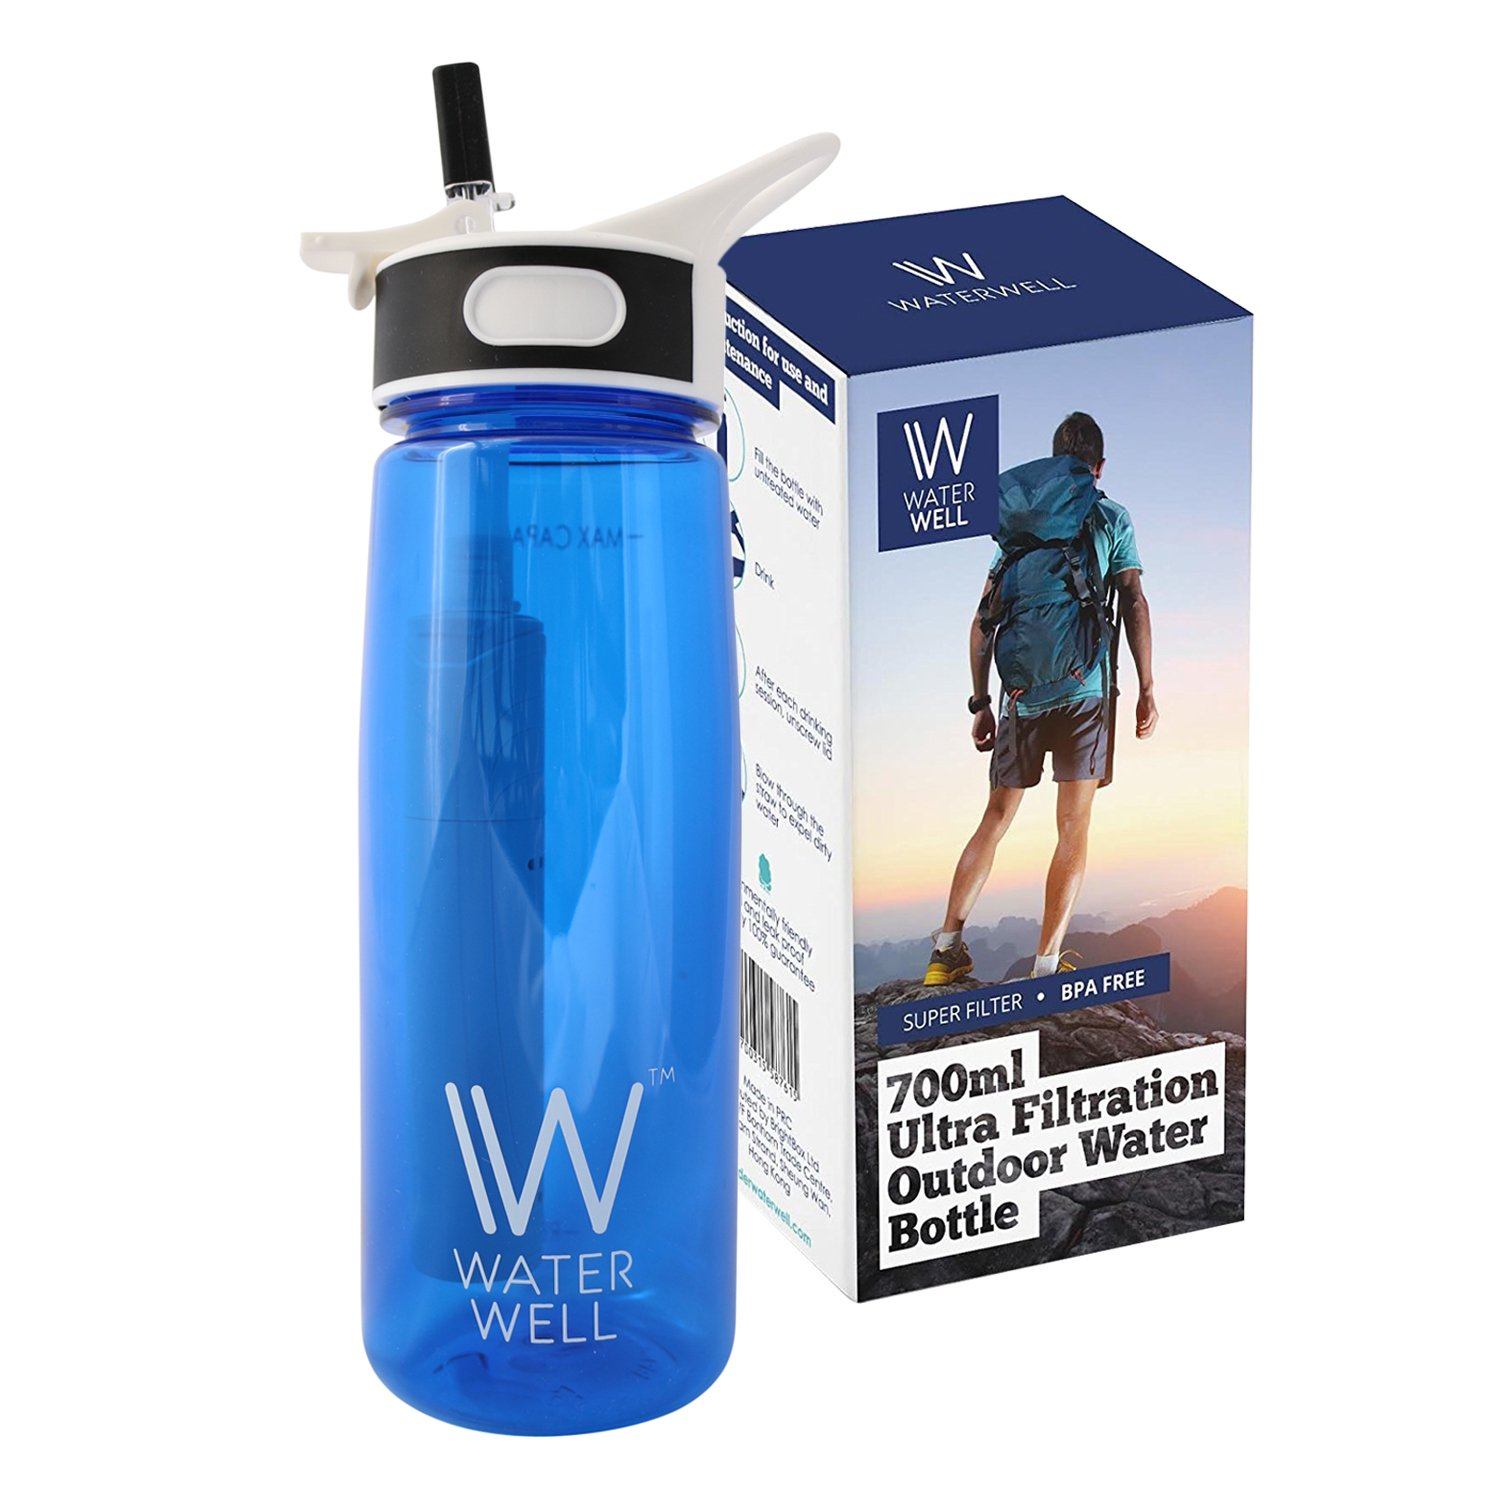 c36340b1d548 WaterWell™ Travel Ultra Filter Water Bottle - Filters 99.9% of Waterborne  Pathogens - 1000 Litre Lifespan // 700ml Capacity Version -- (UPDATE: APRIL  ...